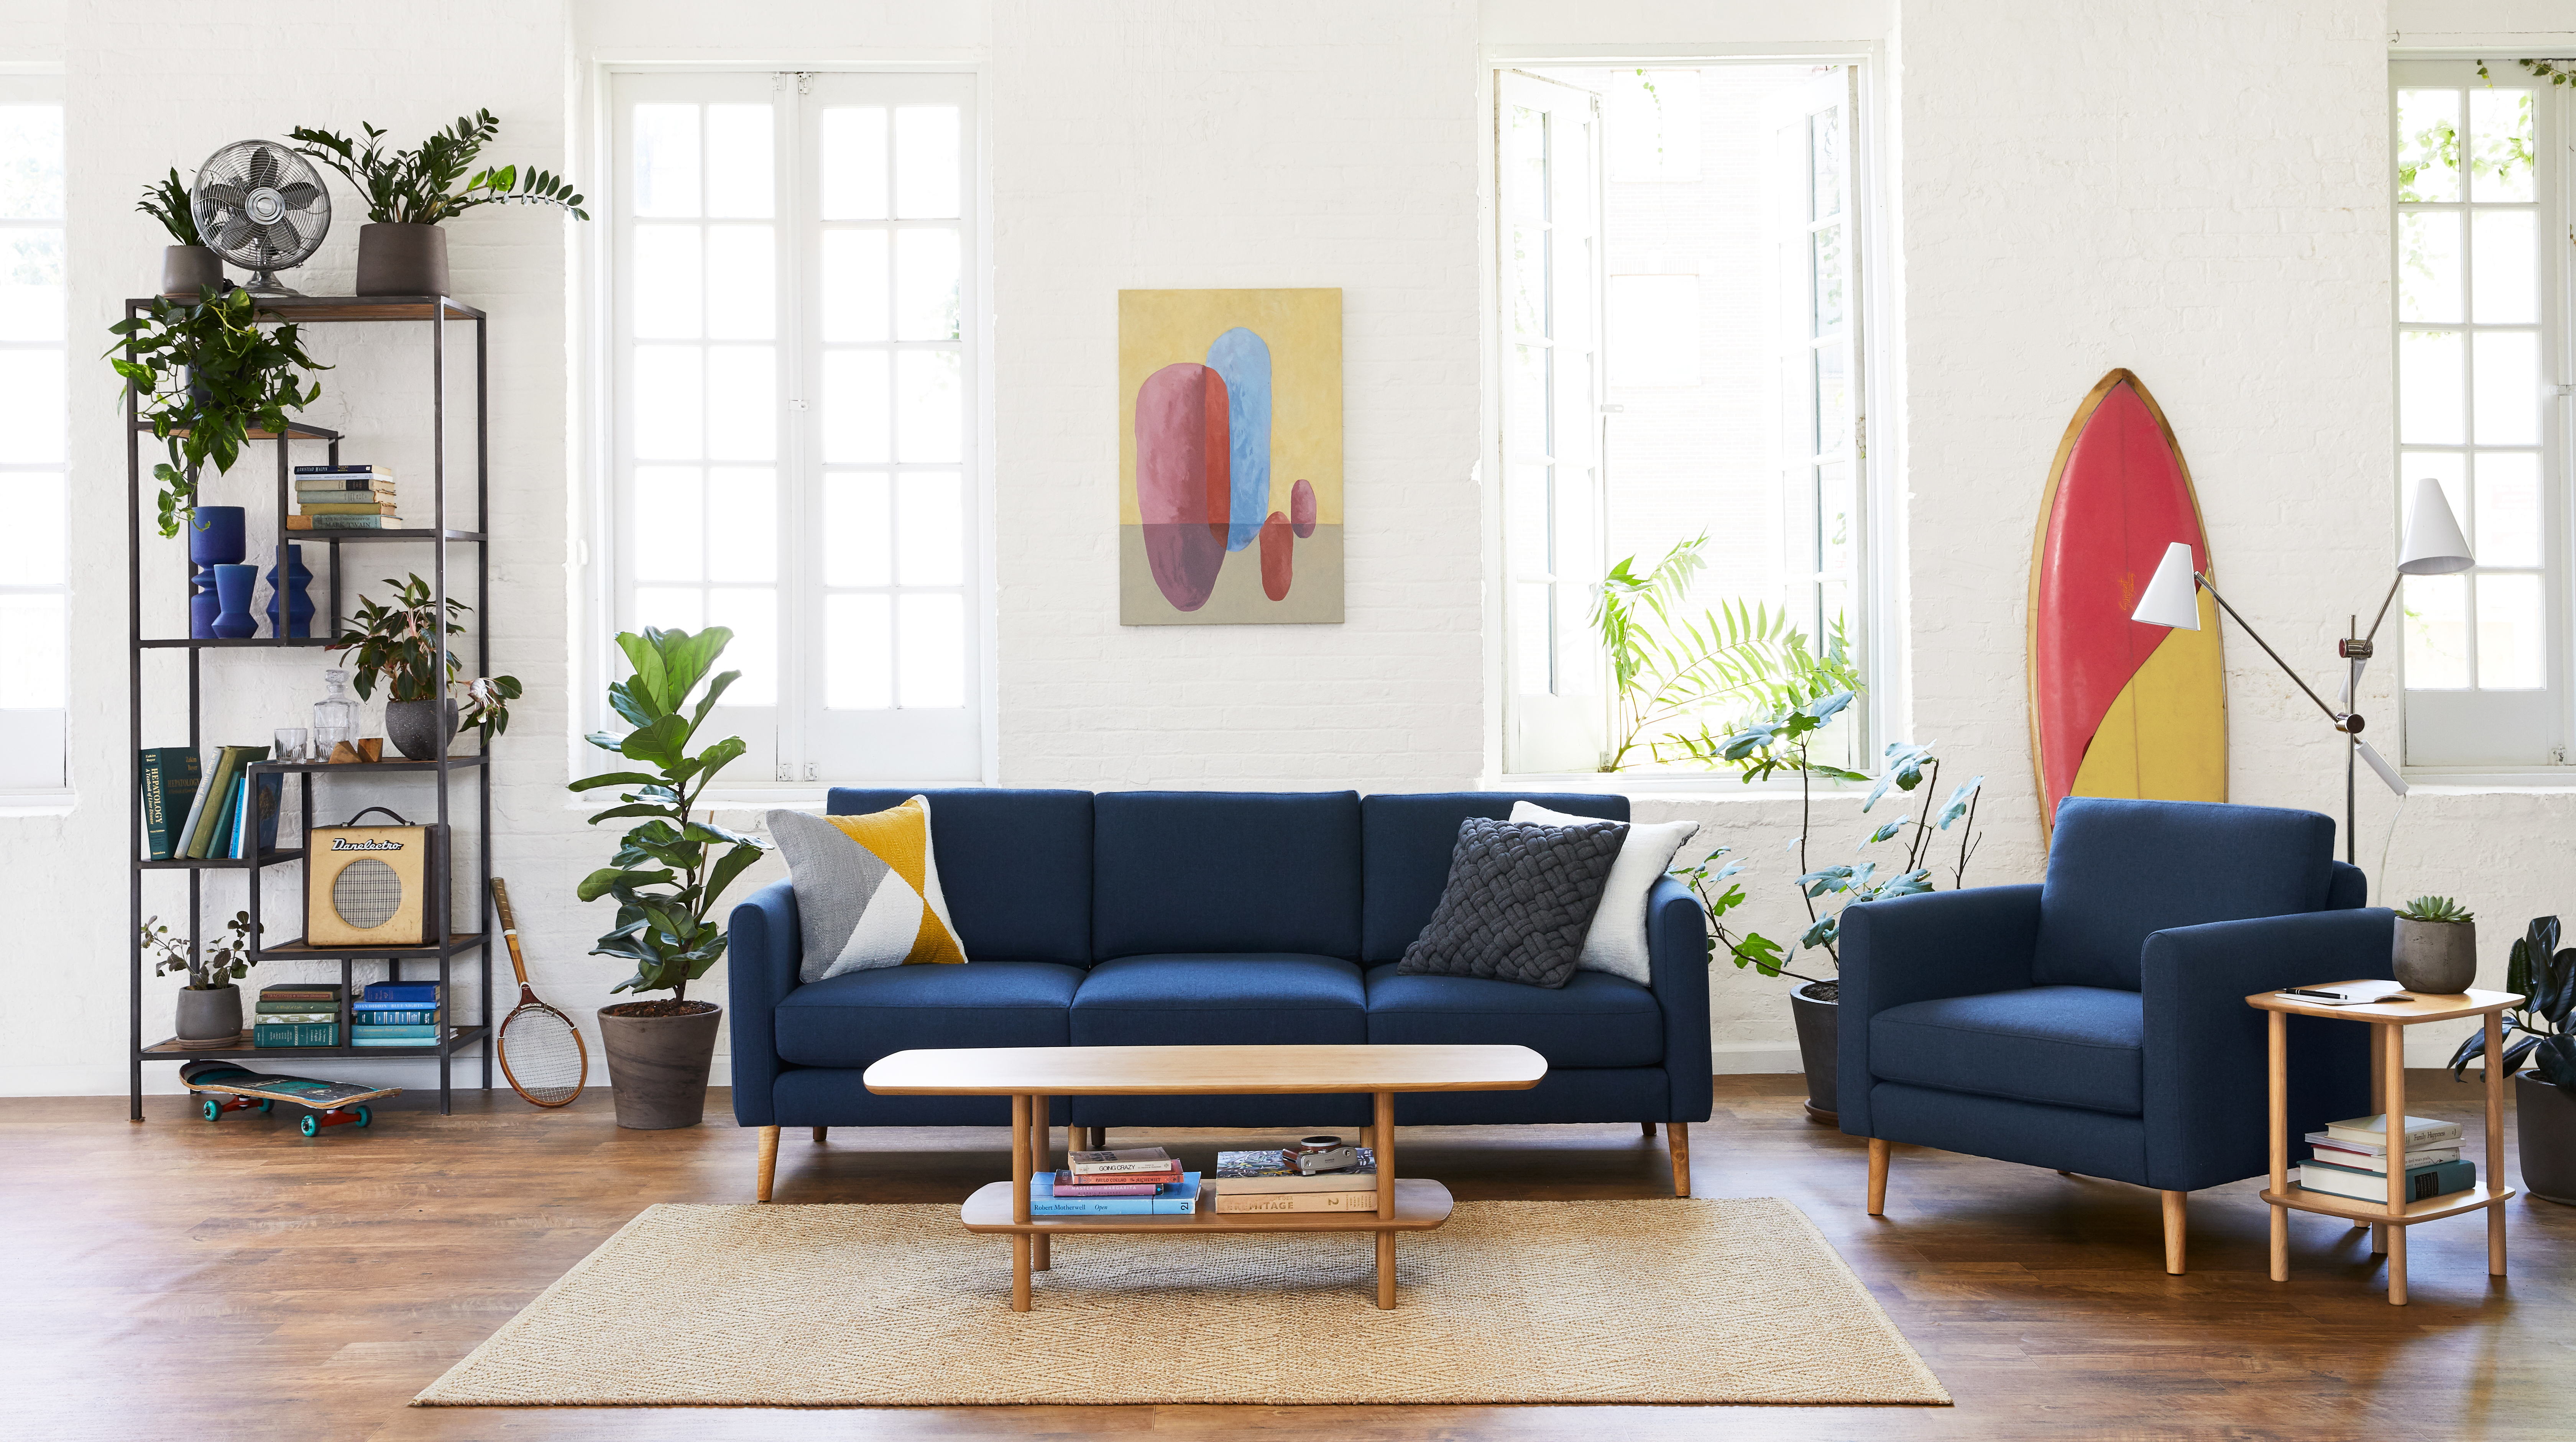 A living room with navy blue sofa and armchair. There is a wooden coffee table and tan rug.